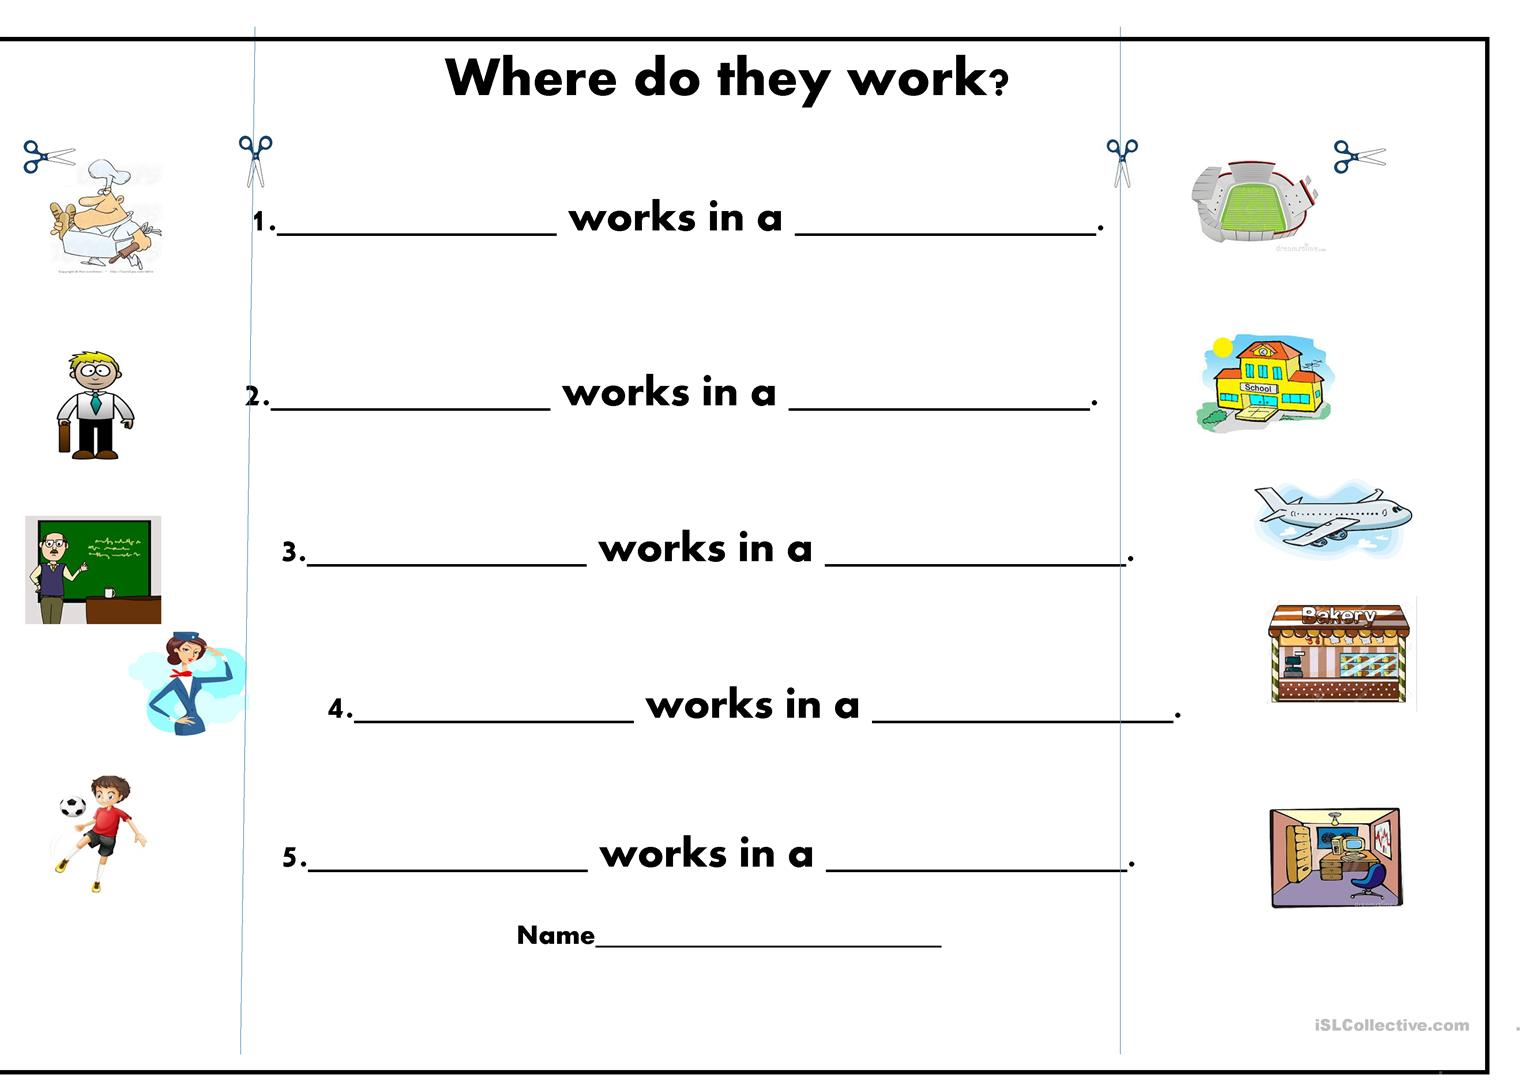 Where do they work? worksheet - Free ESL printable worksheets made ...